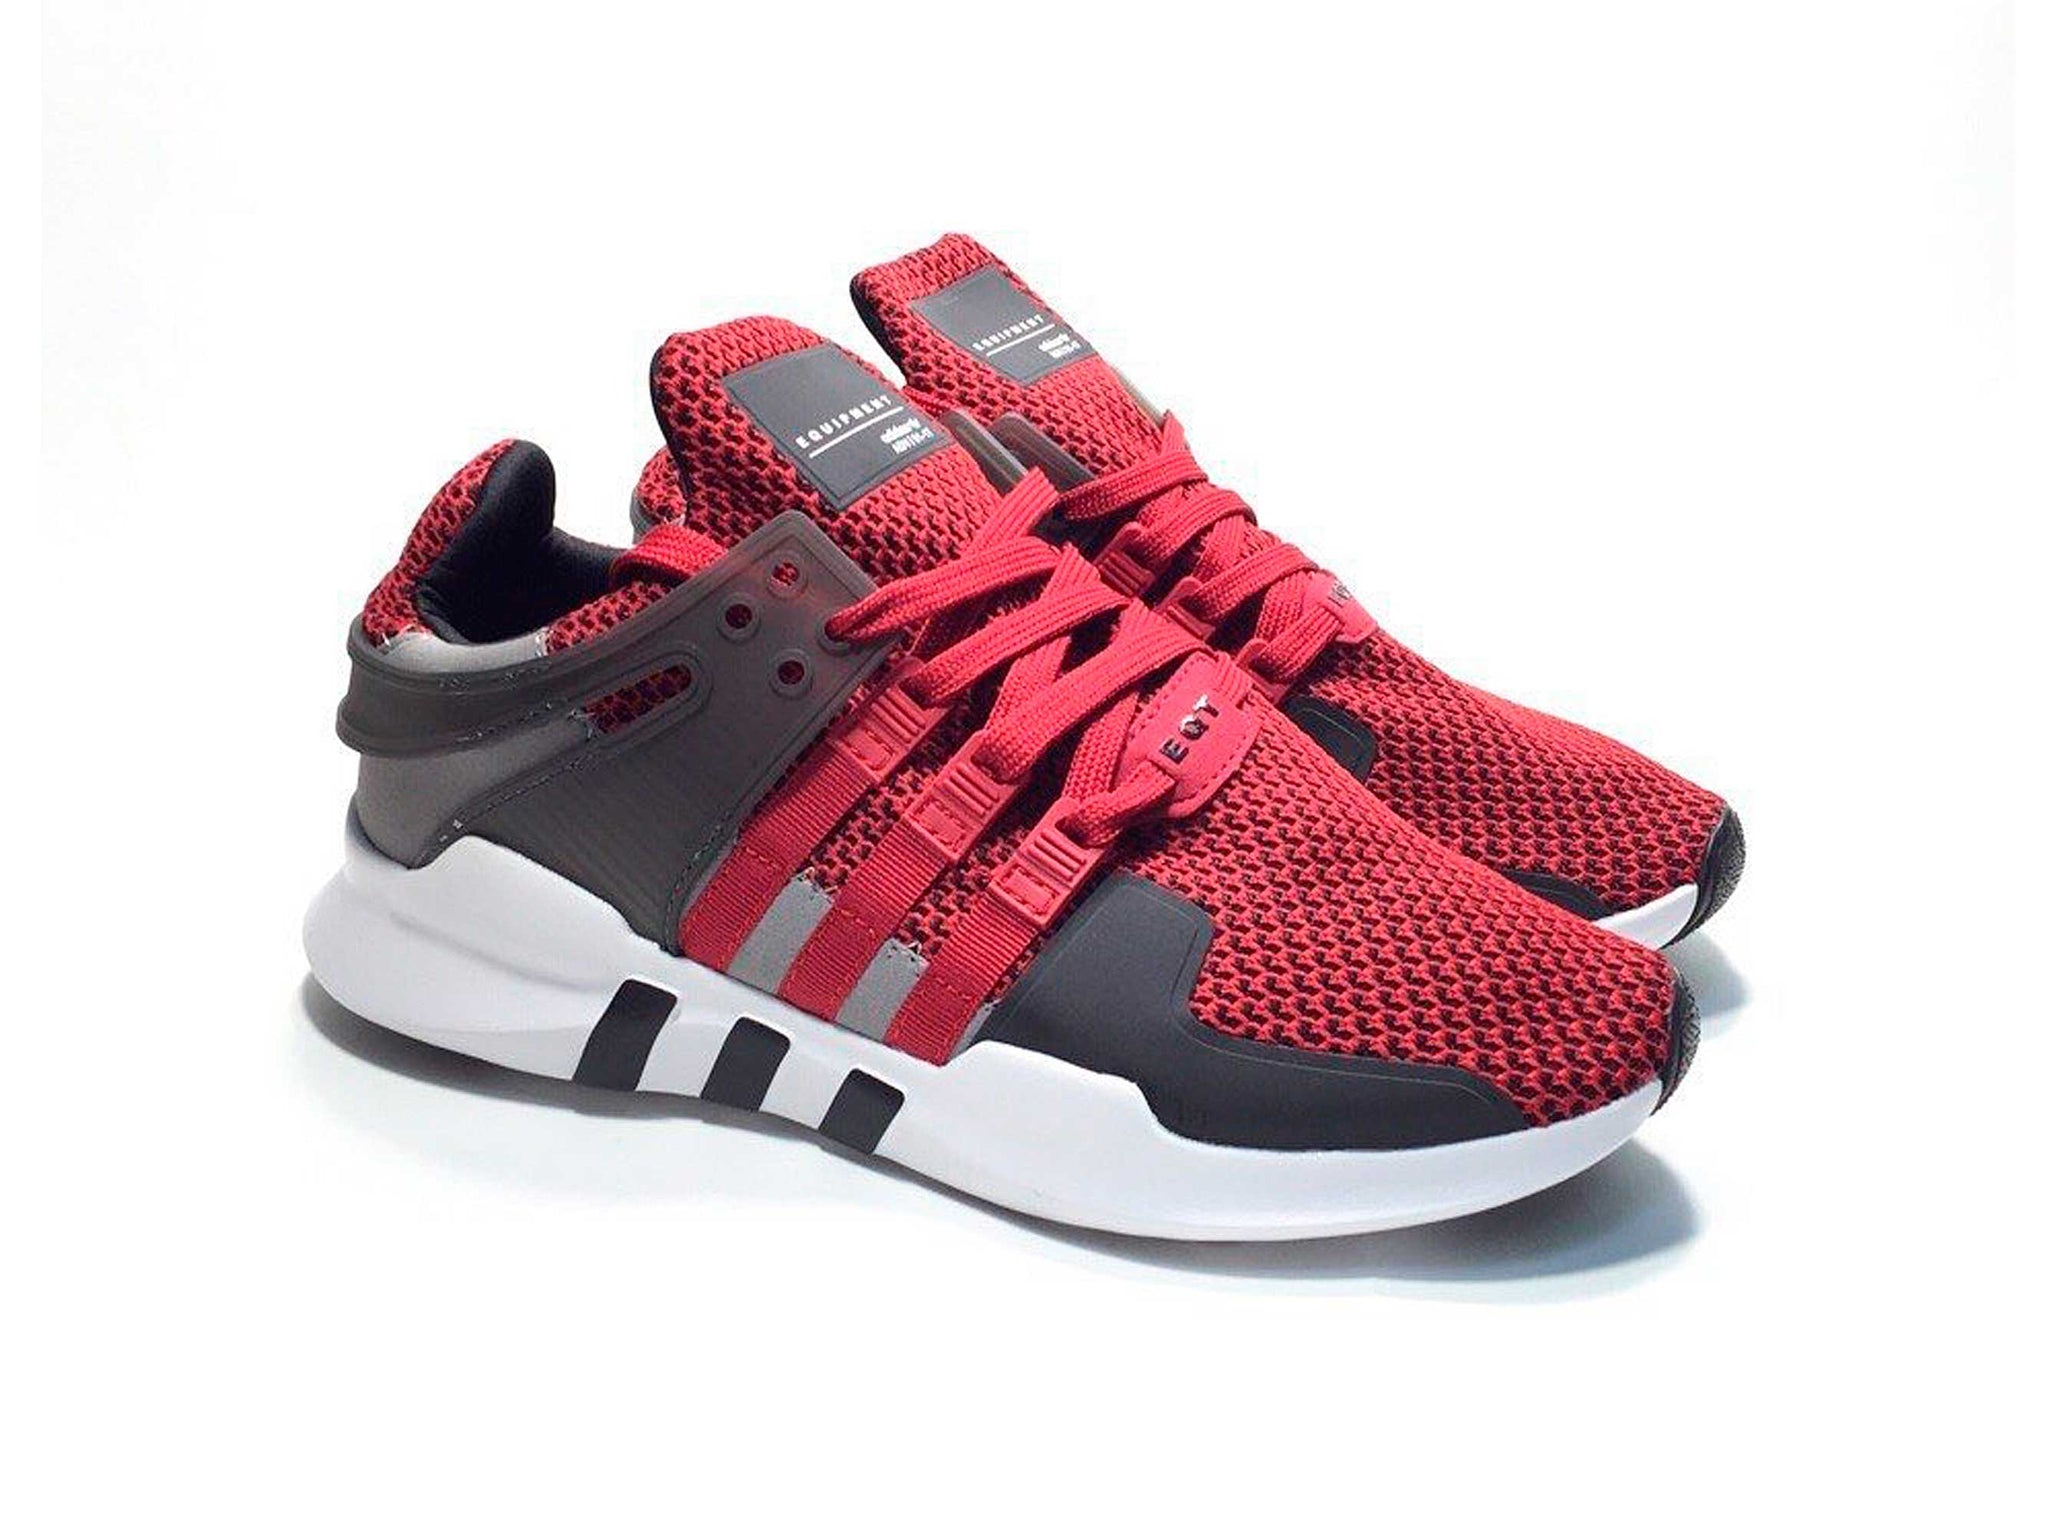 promo code ded7a 7a6ce adidas Equipment Support ADV (Red / Black) – Footwear Shop KSA